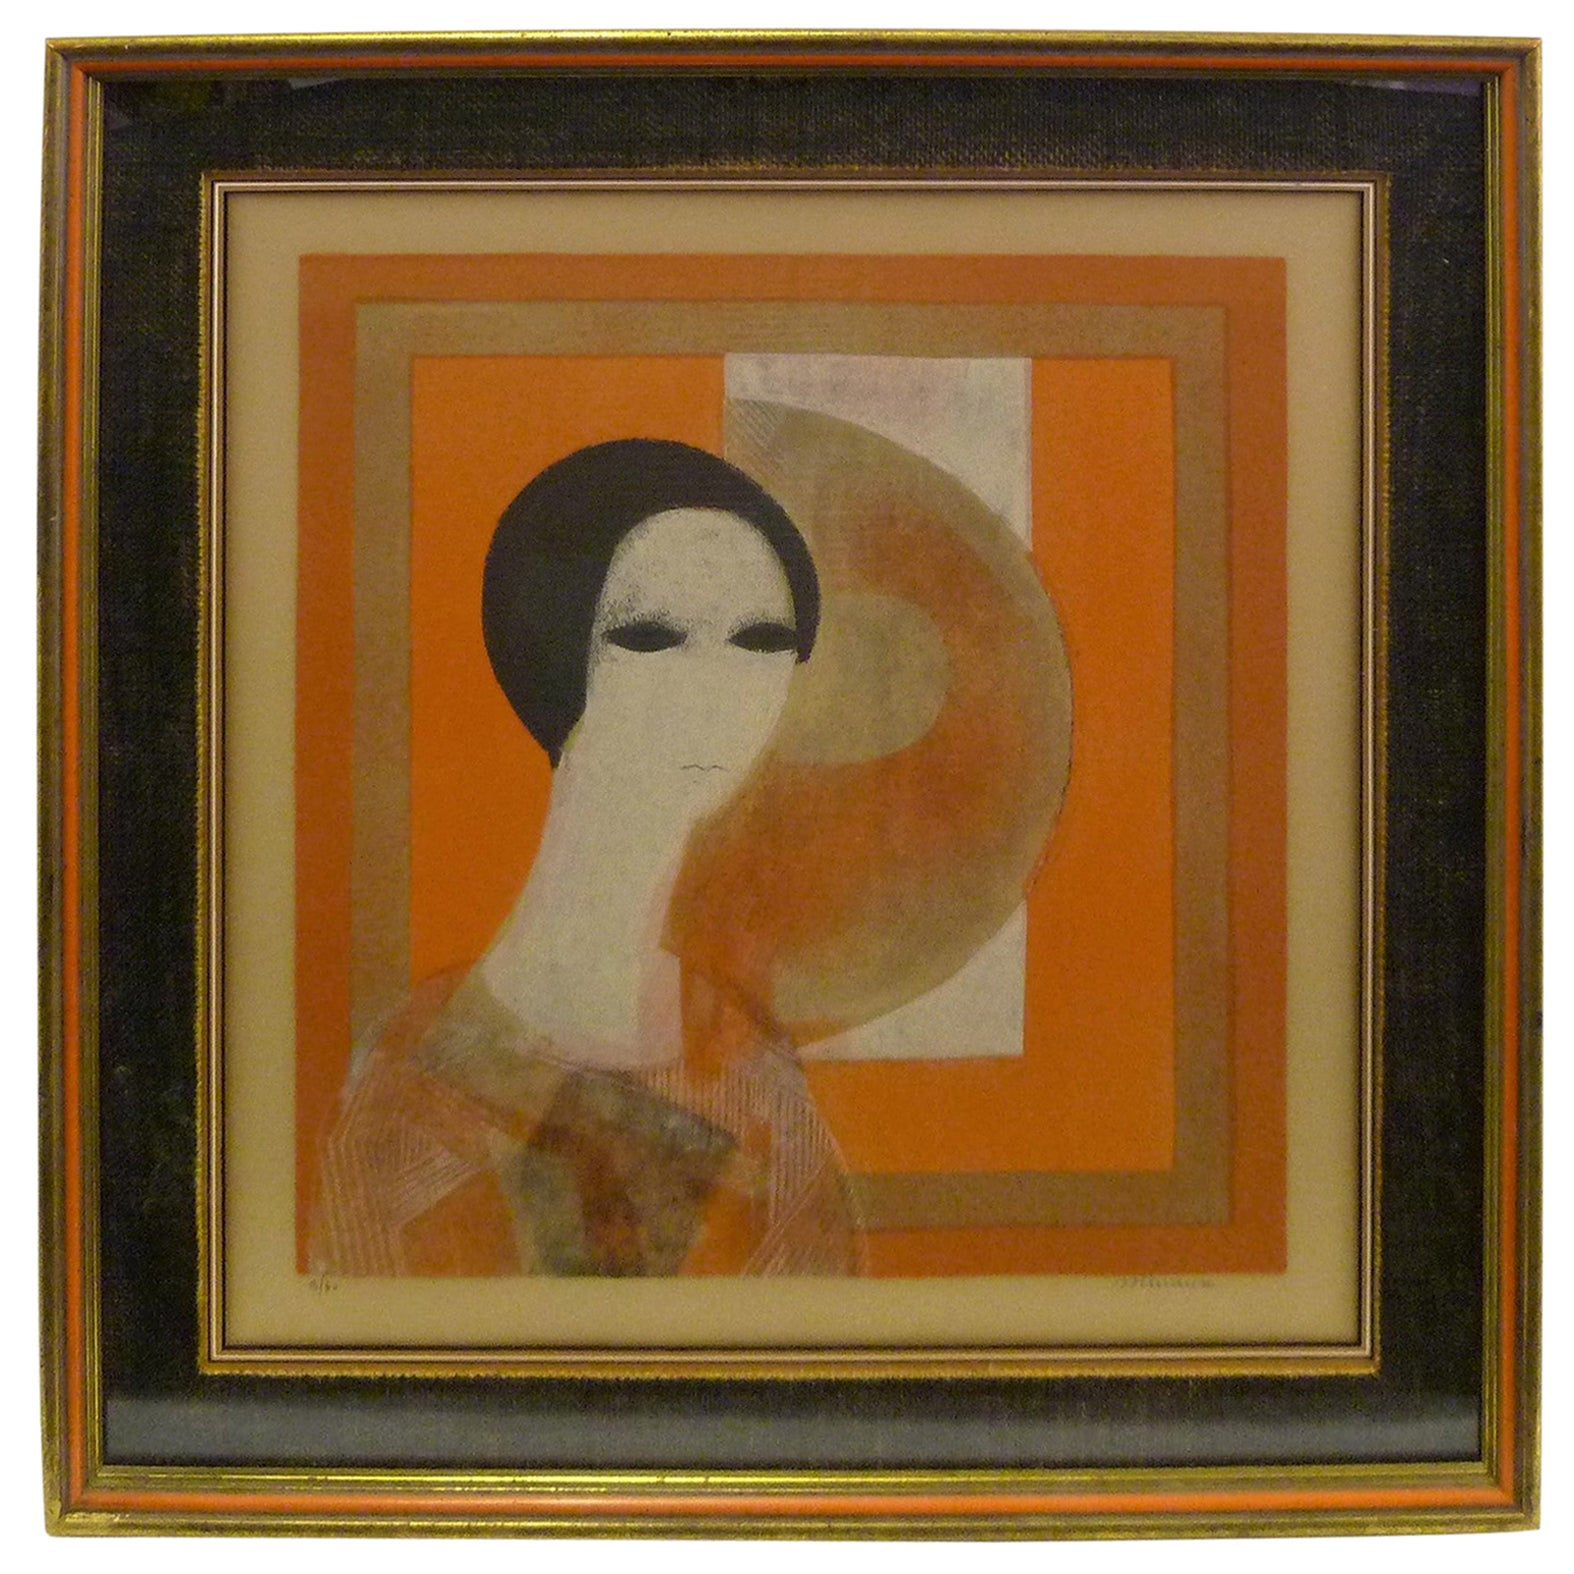 1960s André Minaux Framed Lithograph Signed and Numbered